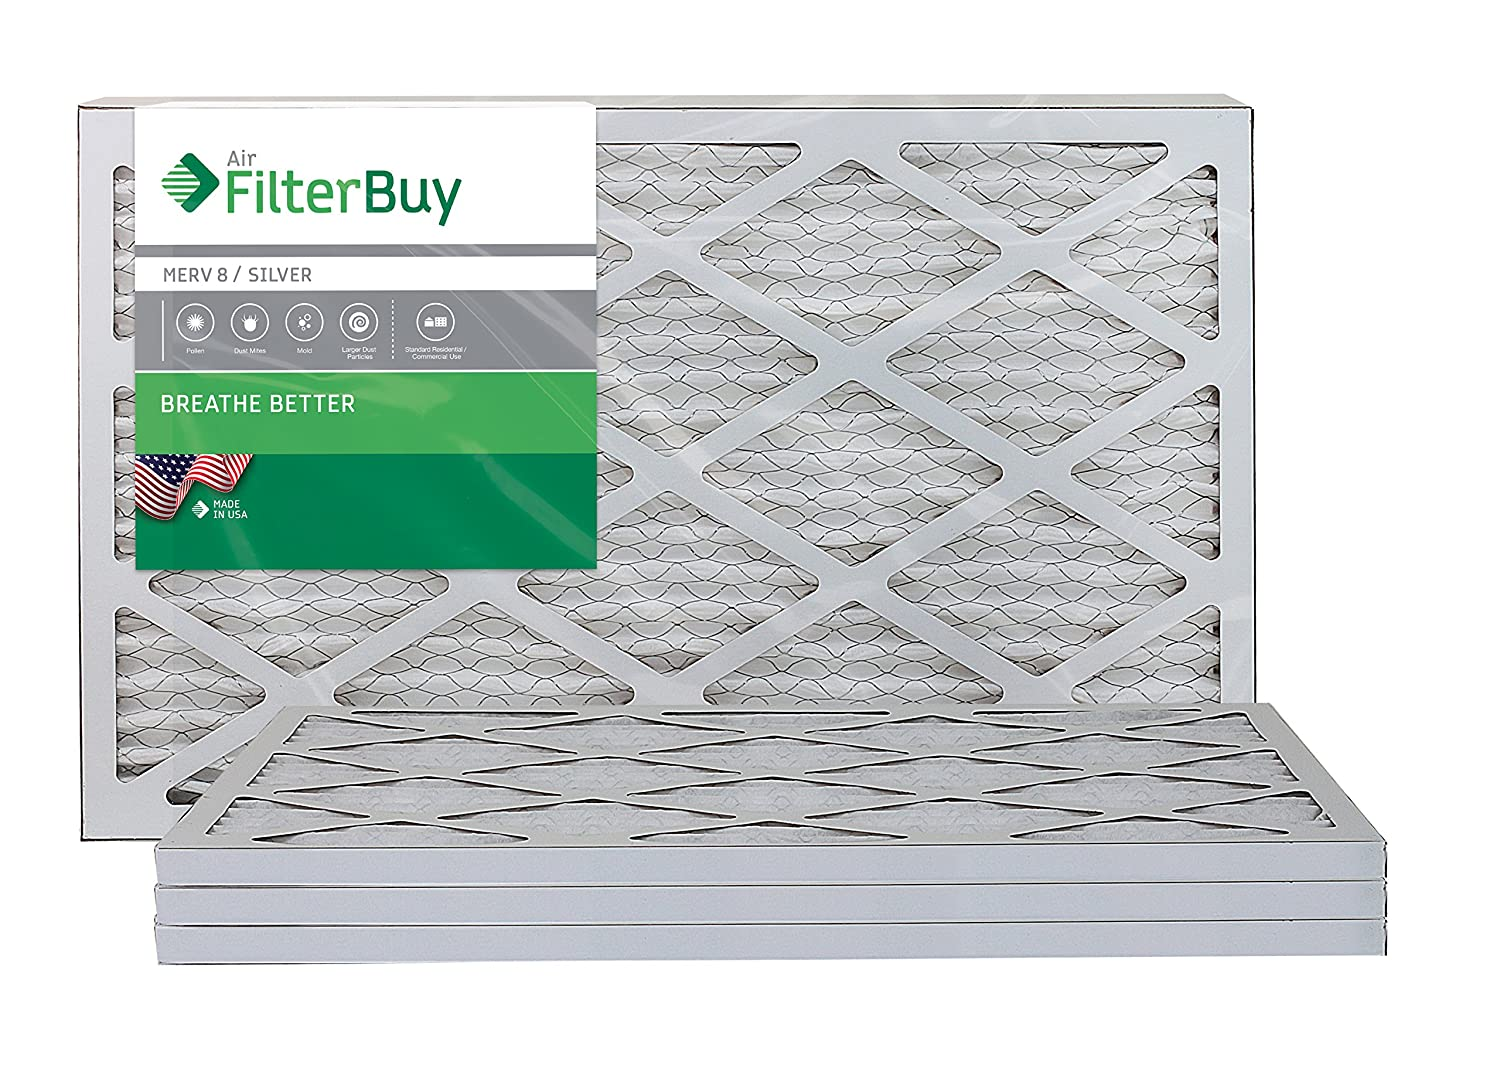 2. FilterBuy AFB MERV 8 14x24x1 Pleated AC Furnace Air Filter, (Pack of 4 Filters), 14x24x1 - Silver